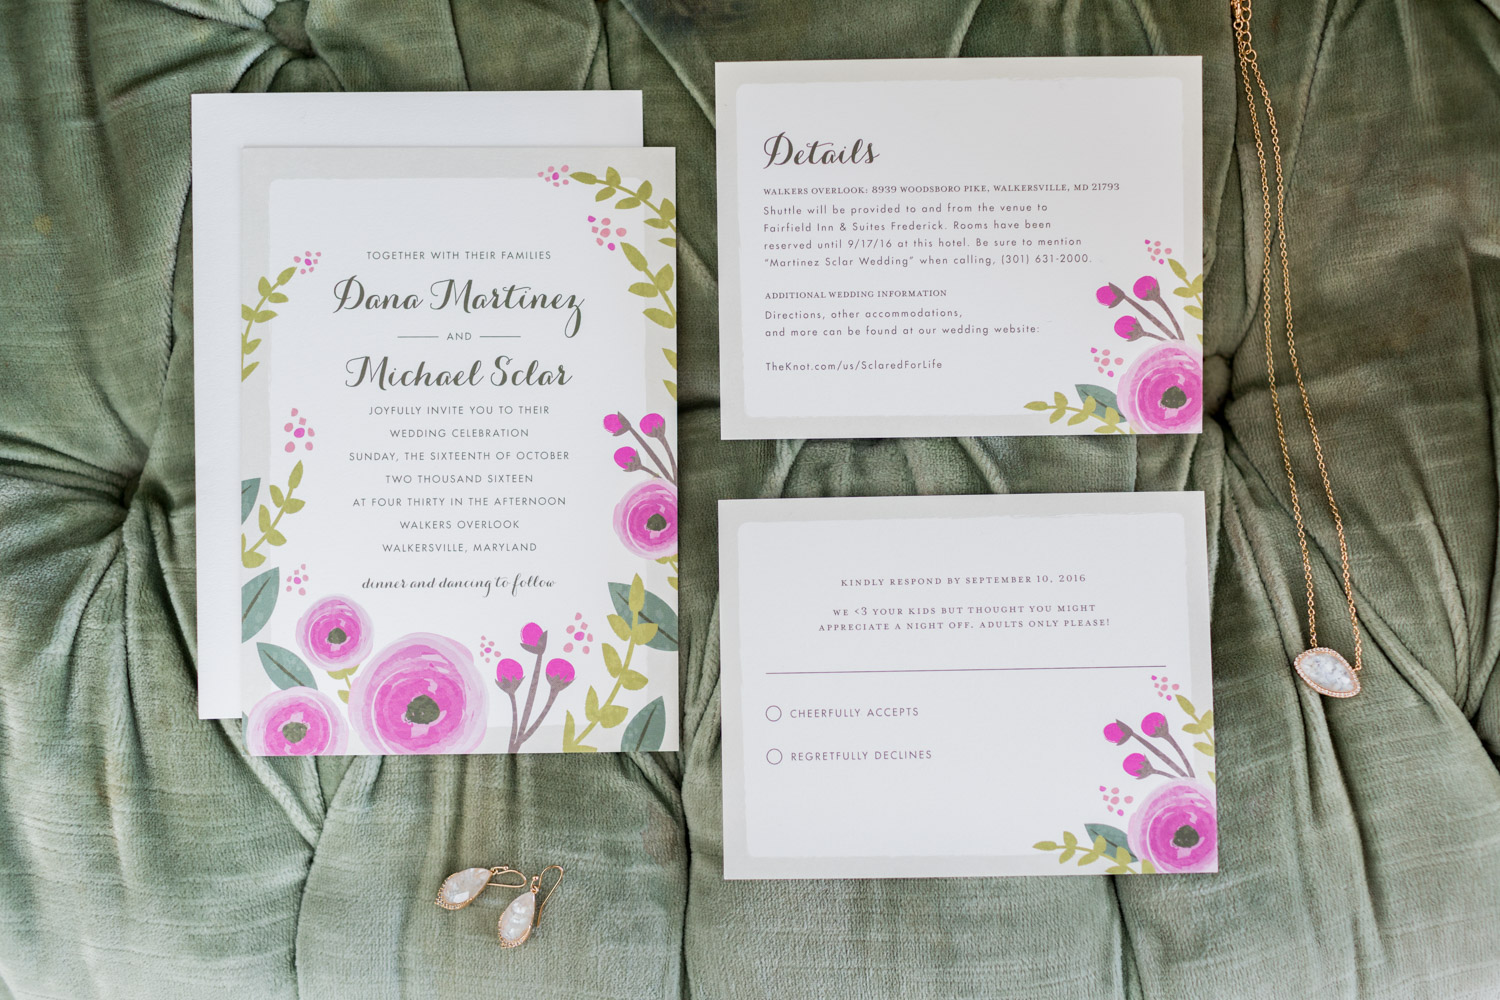 Wedding invitation custom suite with green and pink flowers for a romantic garden vintage wedding for colors sage, eggplant, and cream, Cavin Elizabeth Photography